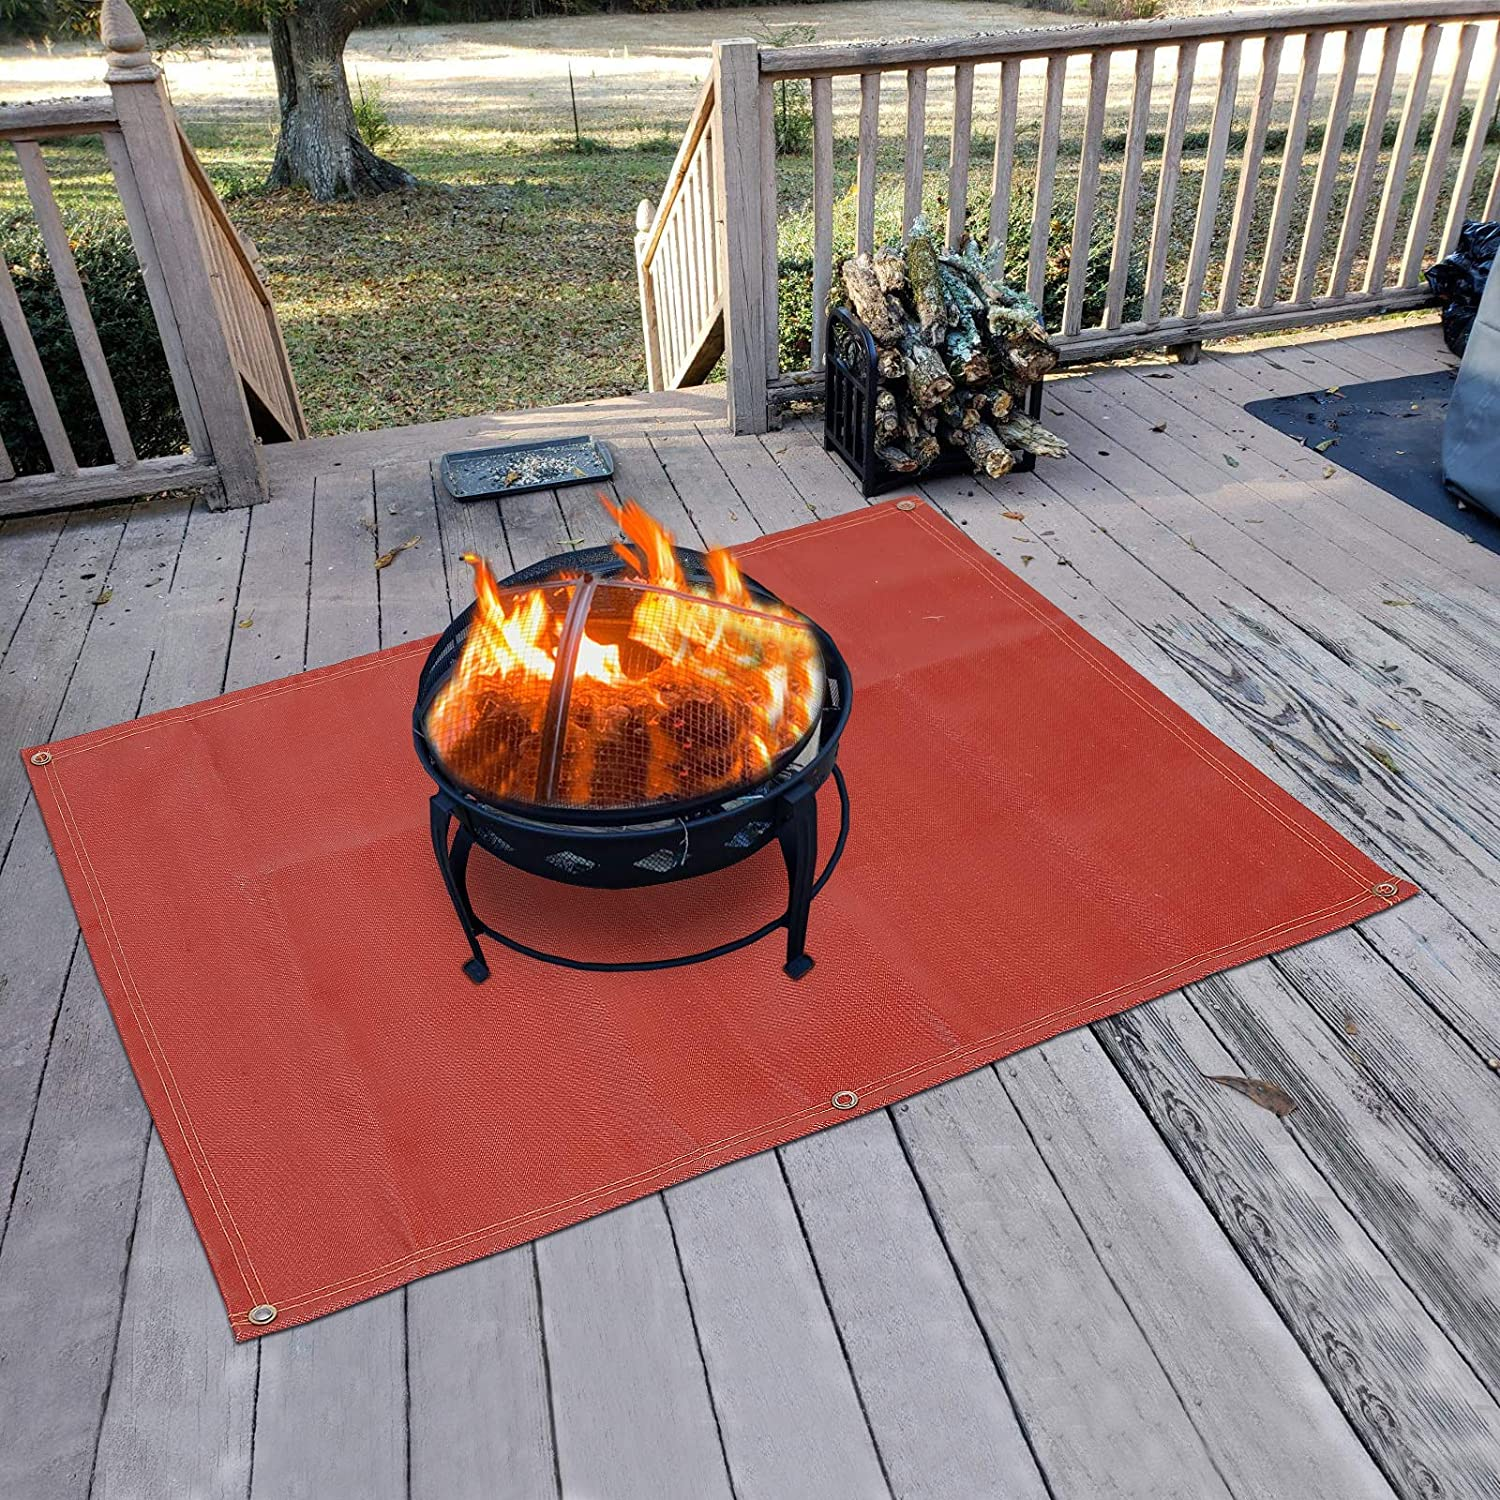 Amazon Com Fire Pit Mat Silicone Stove Fire Mat Retardant Fireproof Heat Resistant Ember Mat And Grill Mat Under The Stove Protect Your Deck Terrace Lawn Or Campground From Embers Washable 70 58 Home Improvement